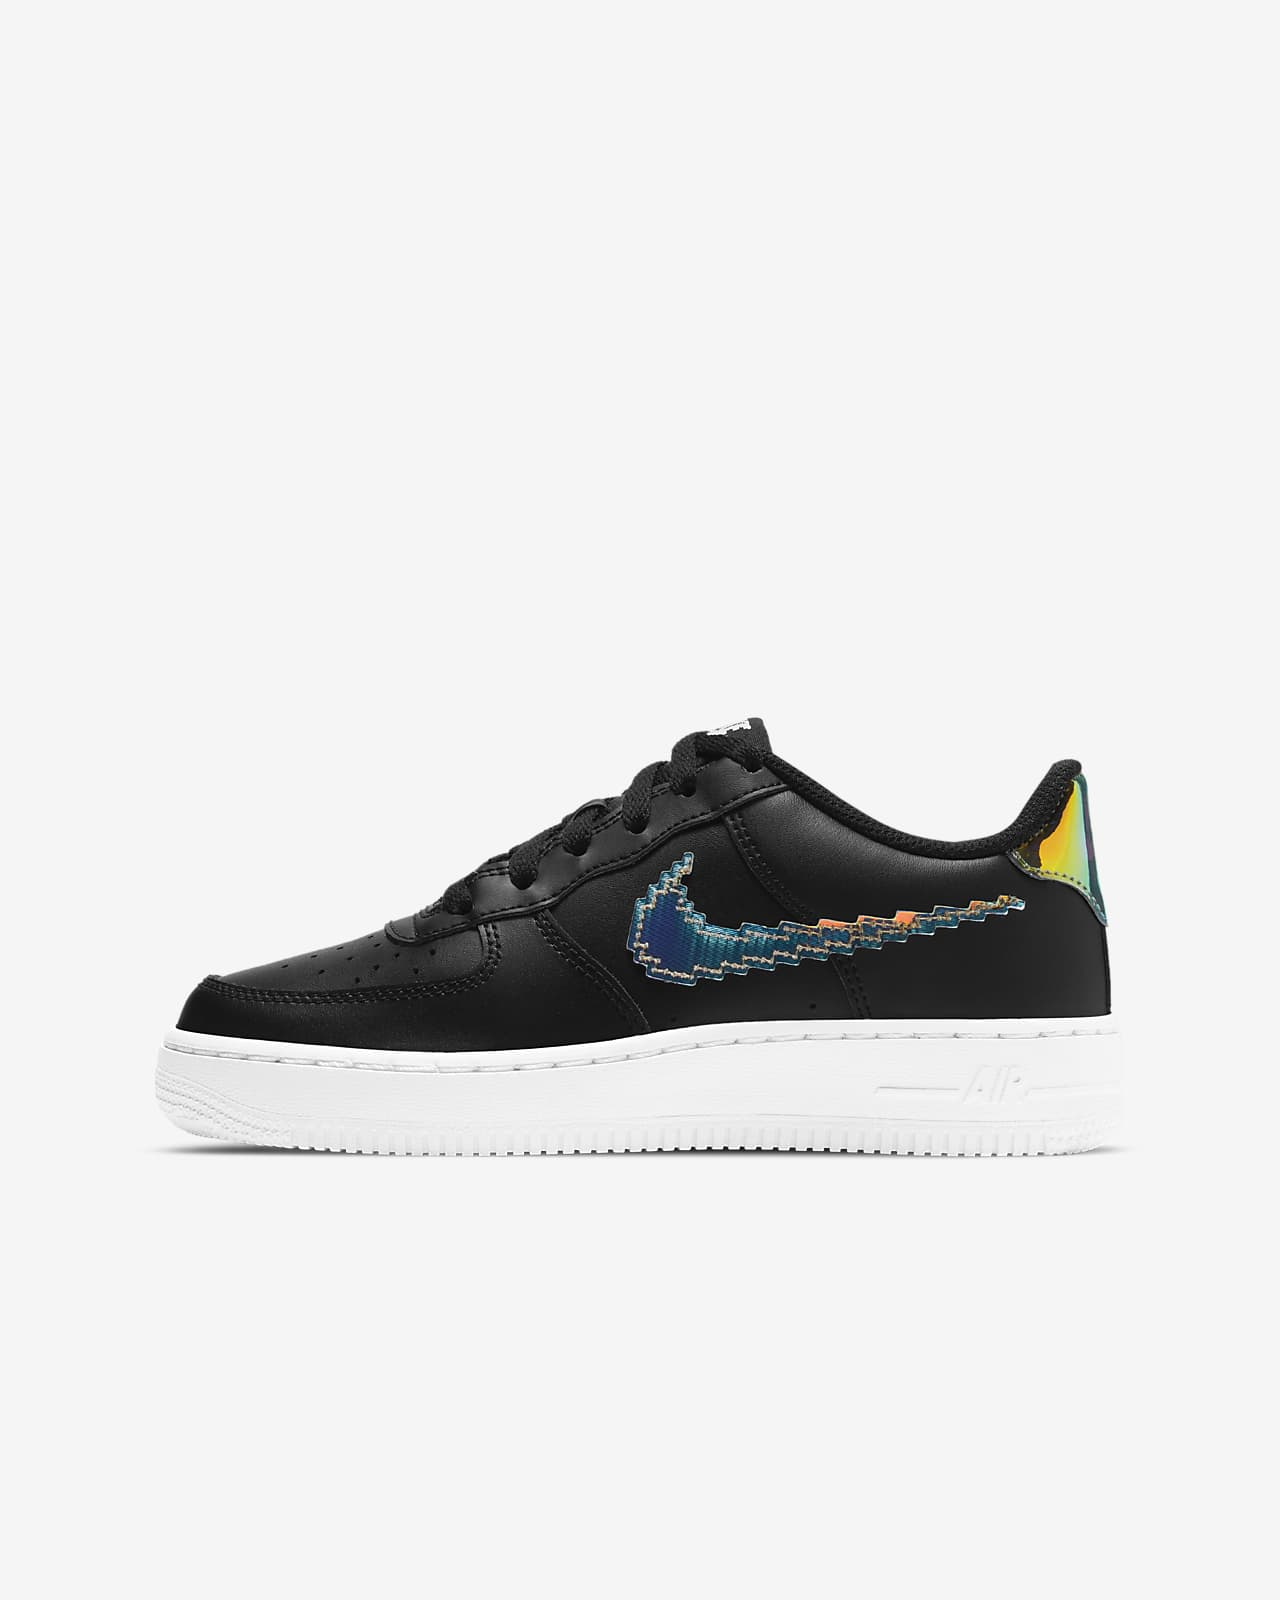 Nike Air Force 1 LV8 大童鞋款